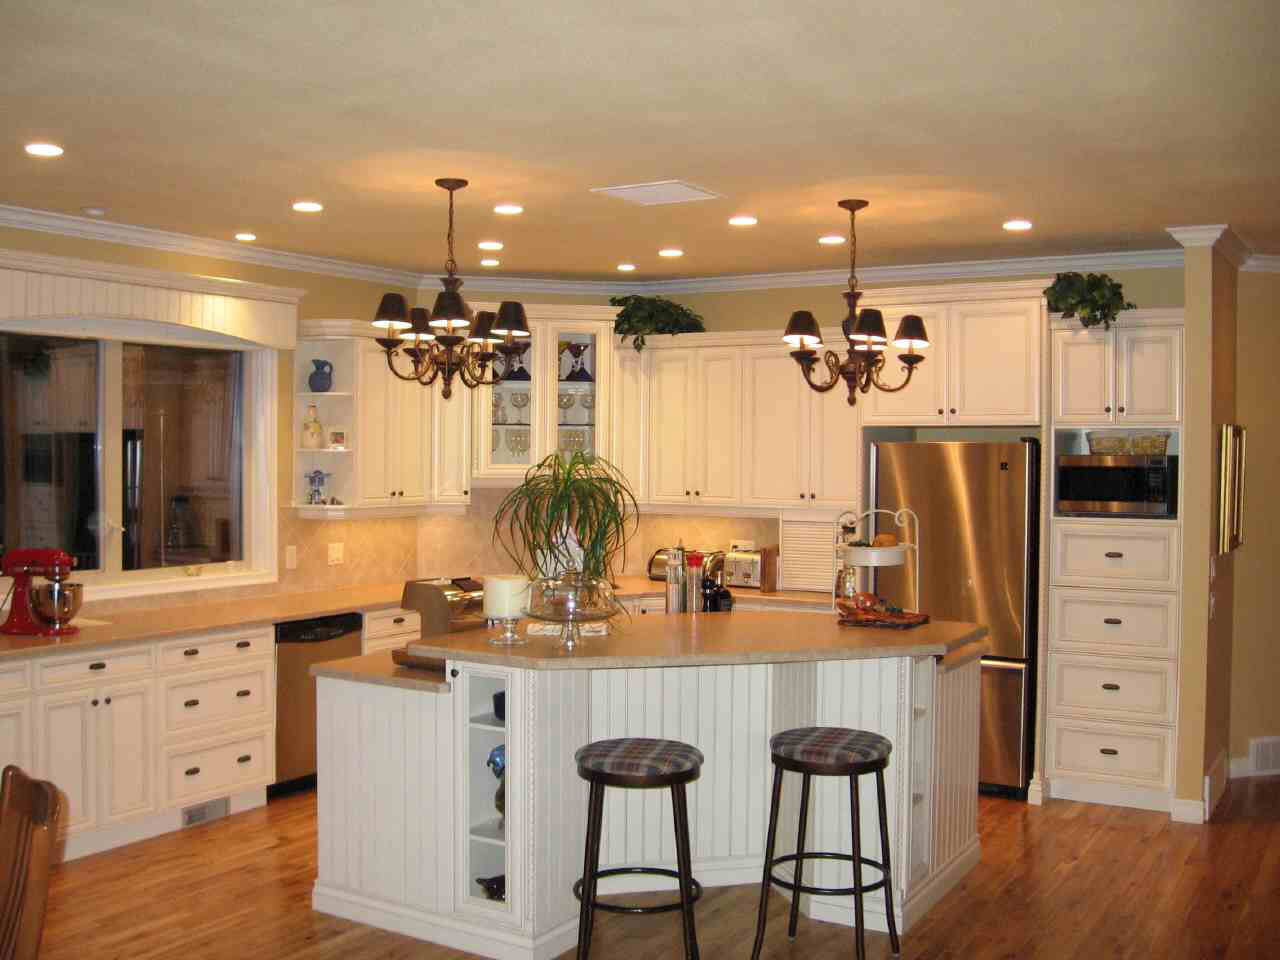 Kitchen room small kitchen designs - Small kitchen ideas ...